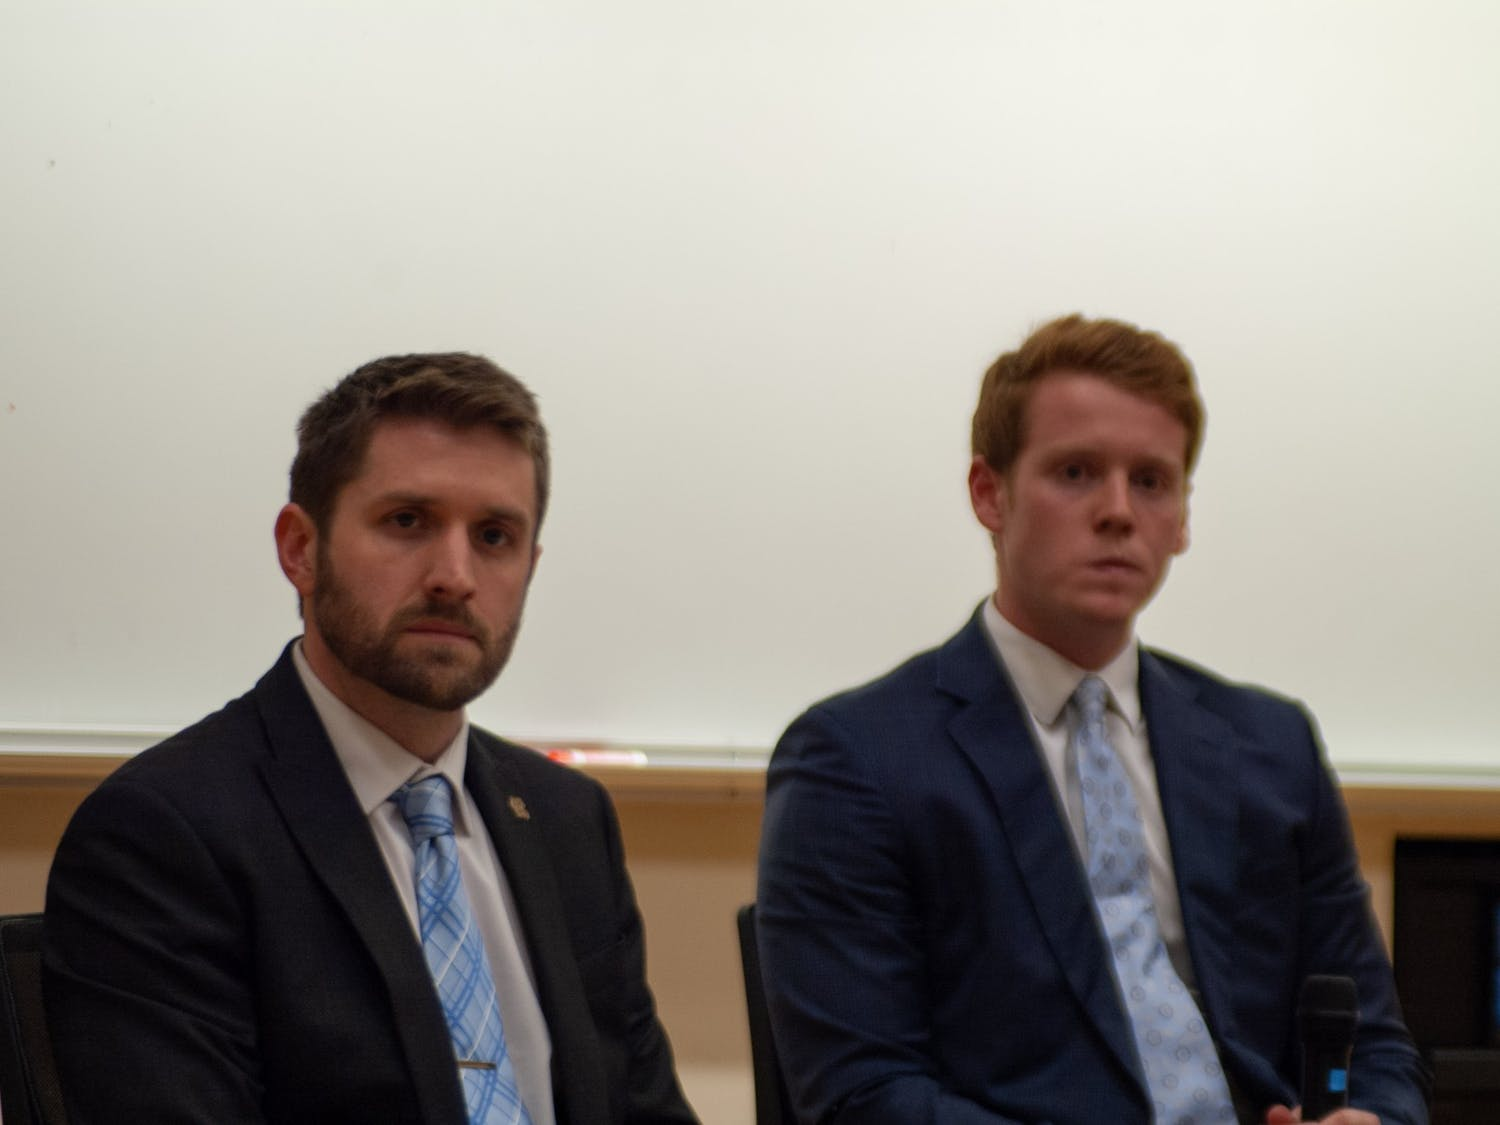 (From left) Student Body President candidates Ryan Collins and Reeves Moseley debated each other on Monday, Feb. 10, 2020. The candidates debated civic engagement, graduate student needs, diversity and police conduct, among other topics.